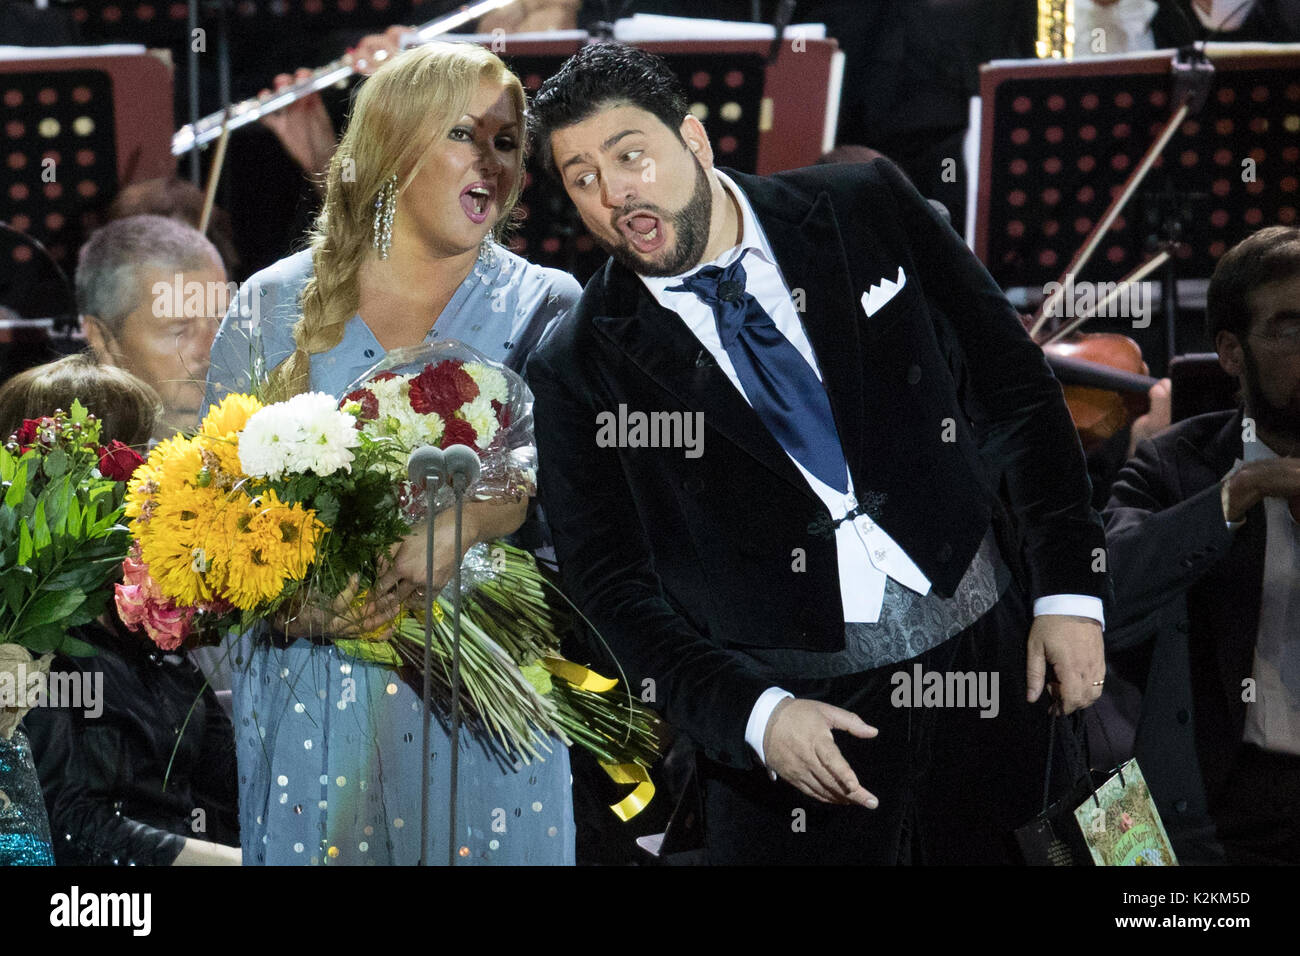 The parting of Anna Netrebko with her husband caused a stir 26.11.2013 60